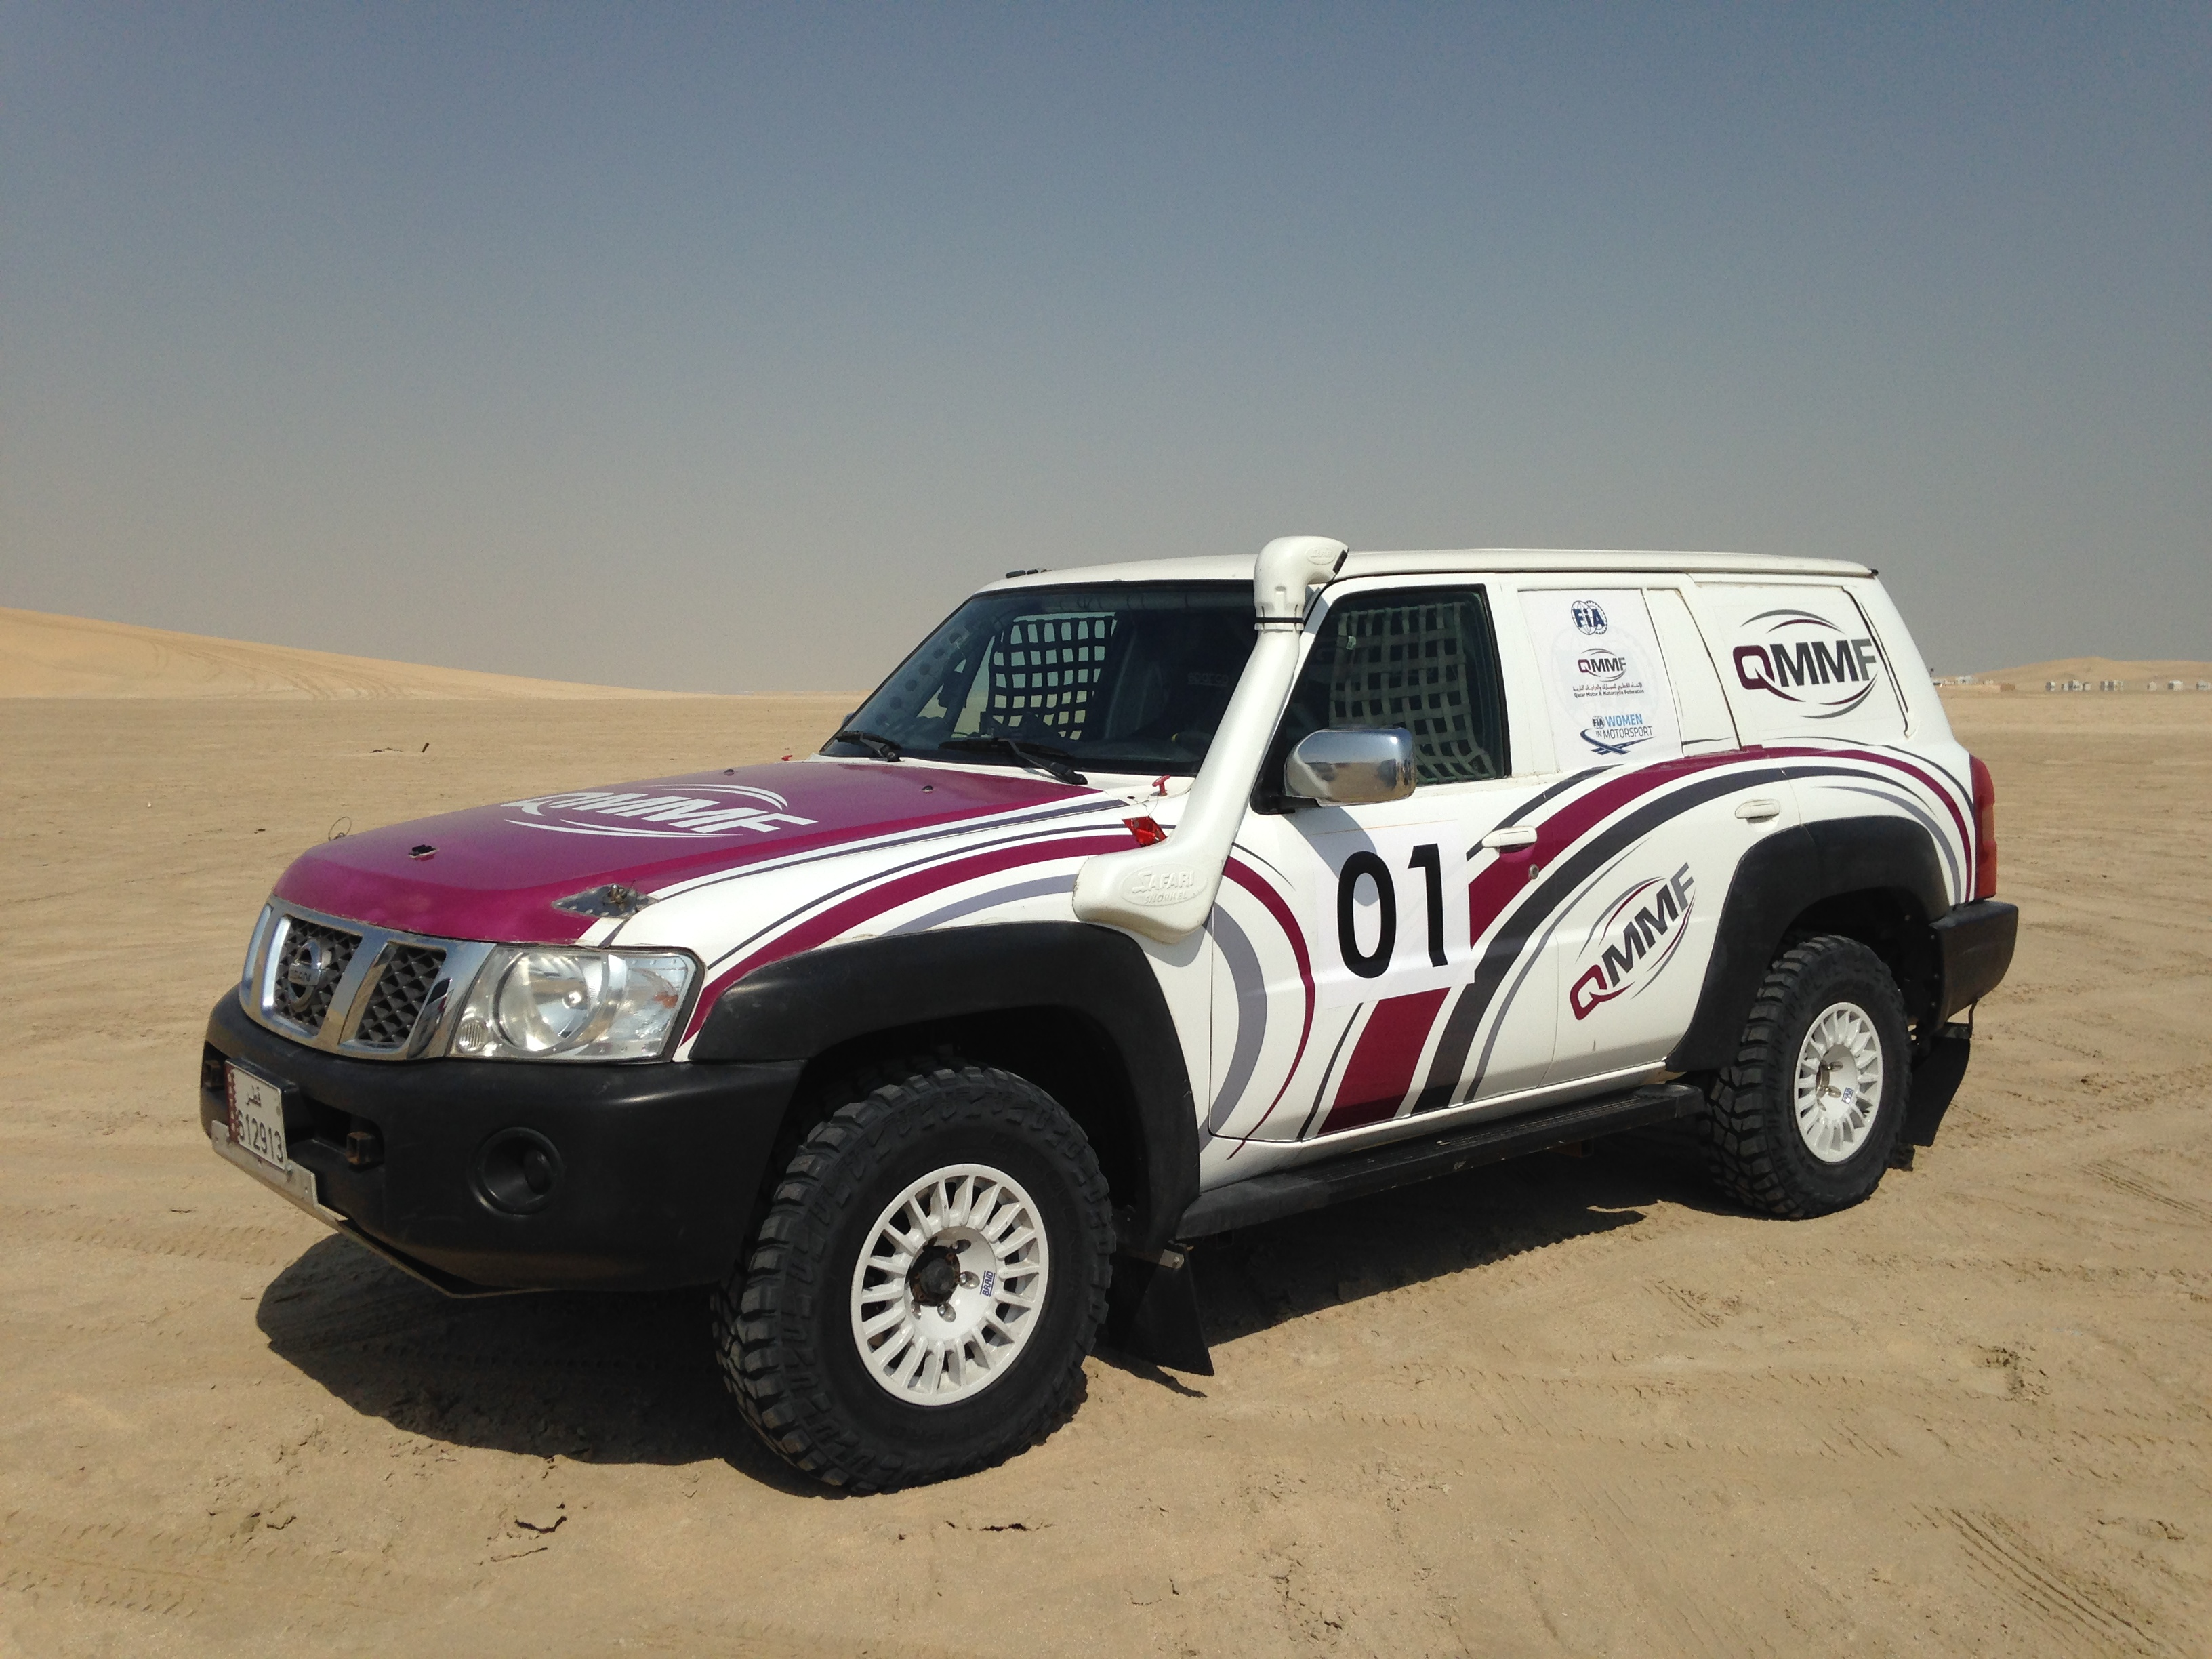 Sara Williams returns from Qatar Cross Country Rally project